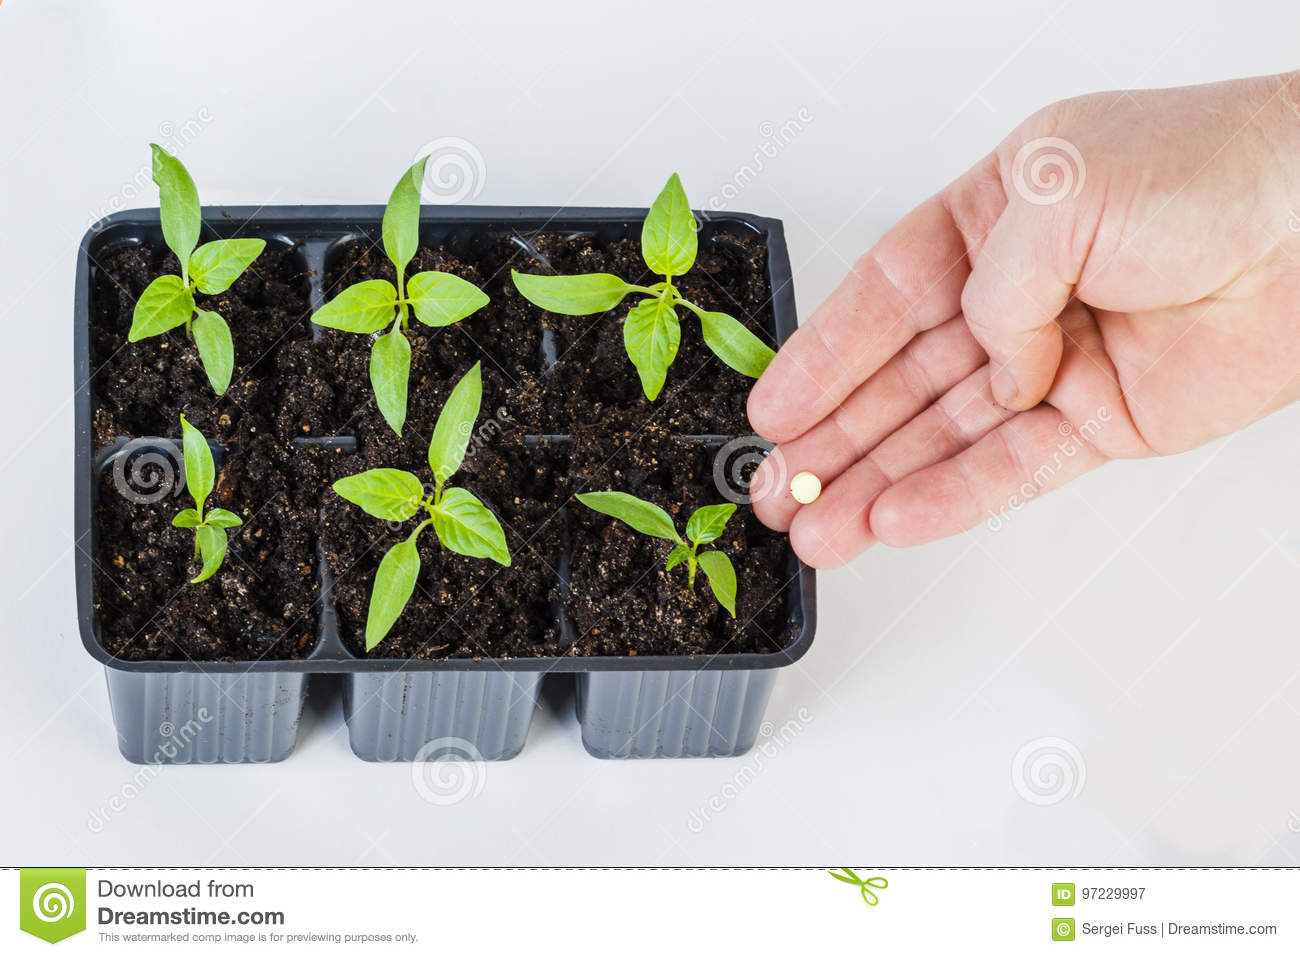 The hands of a farmer giving fertilizer to young green plants.